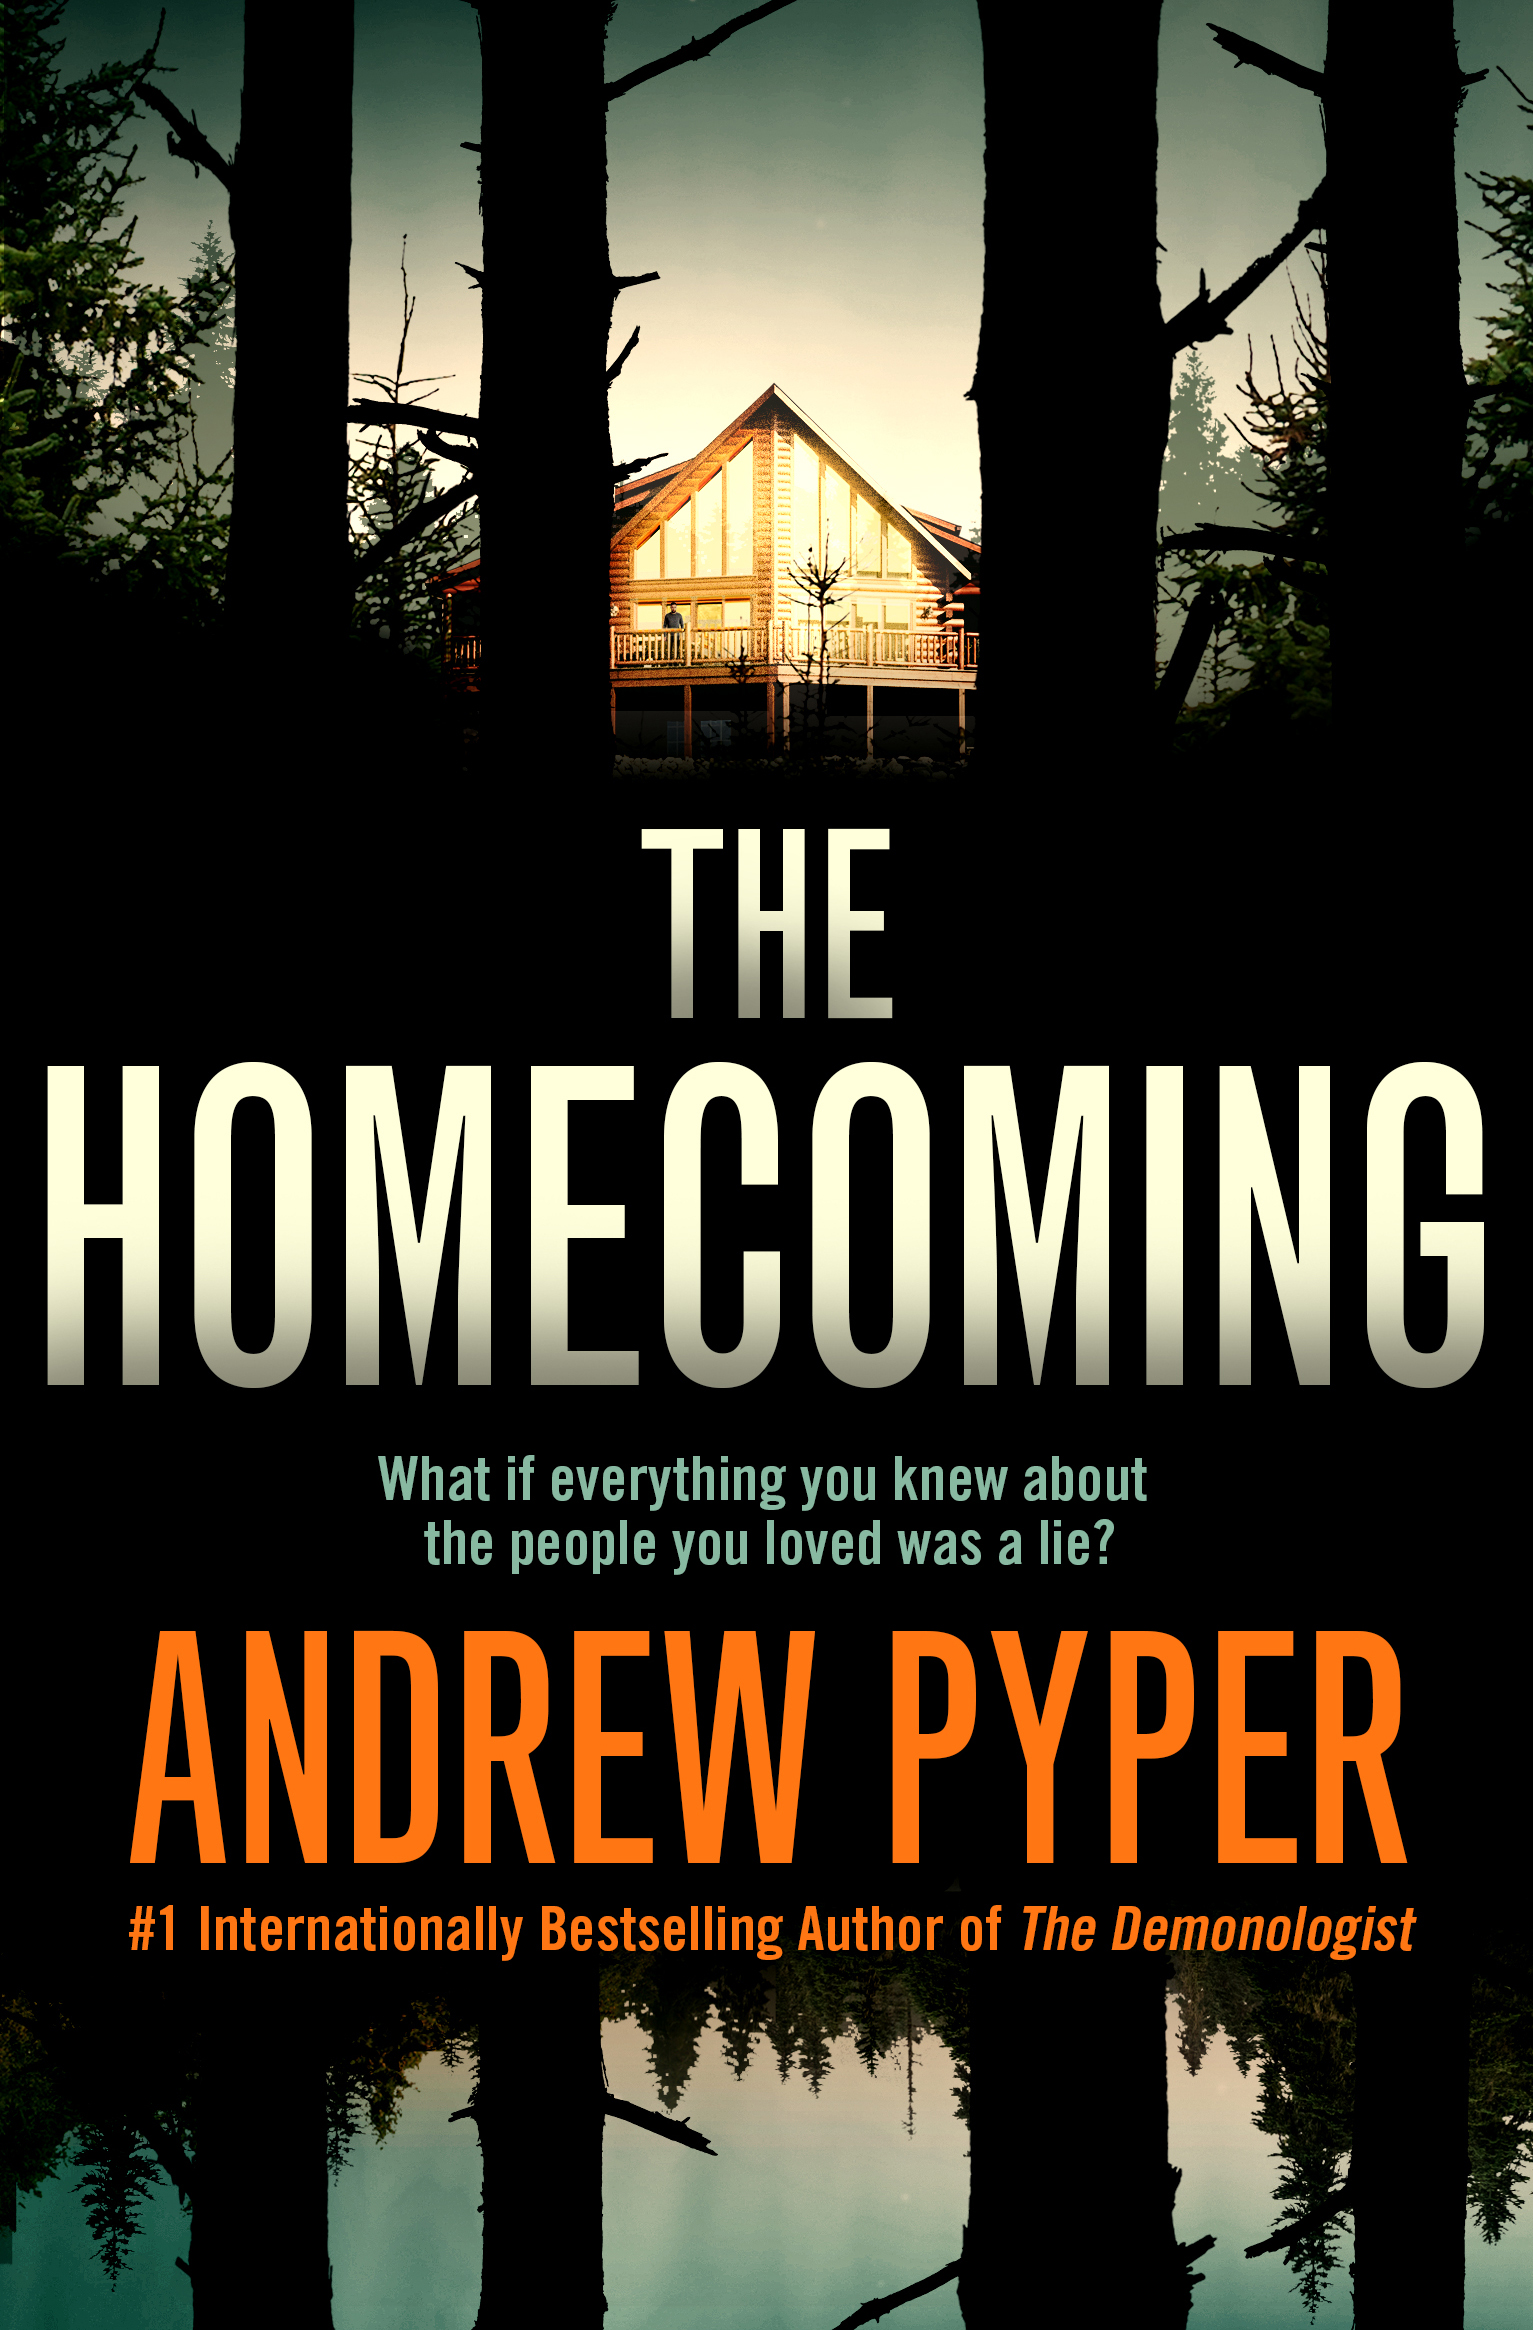 The Homecoming by Andrew Pyper cover image